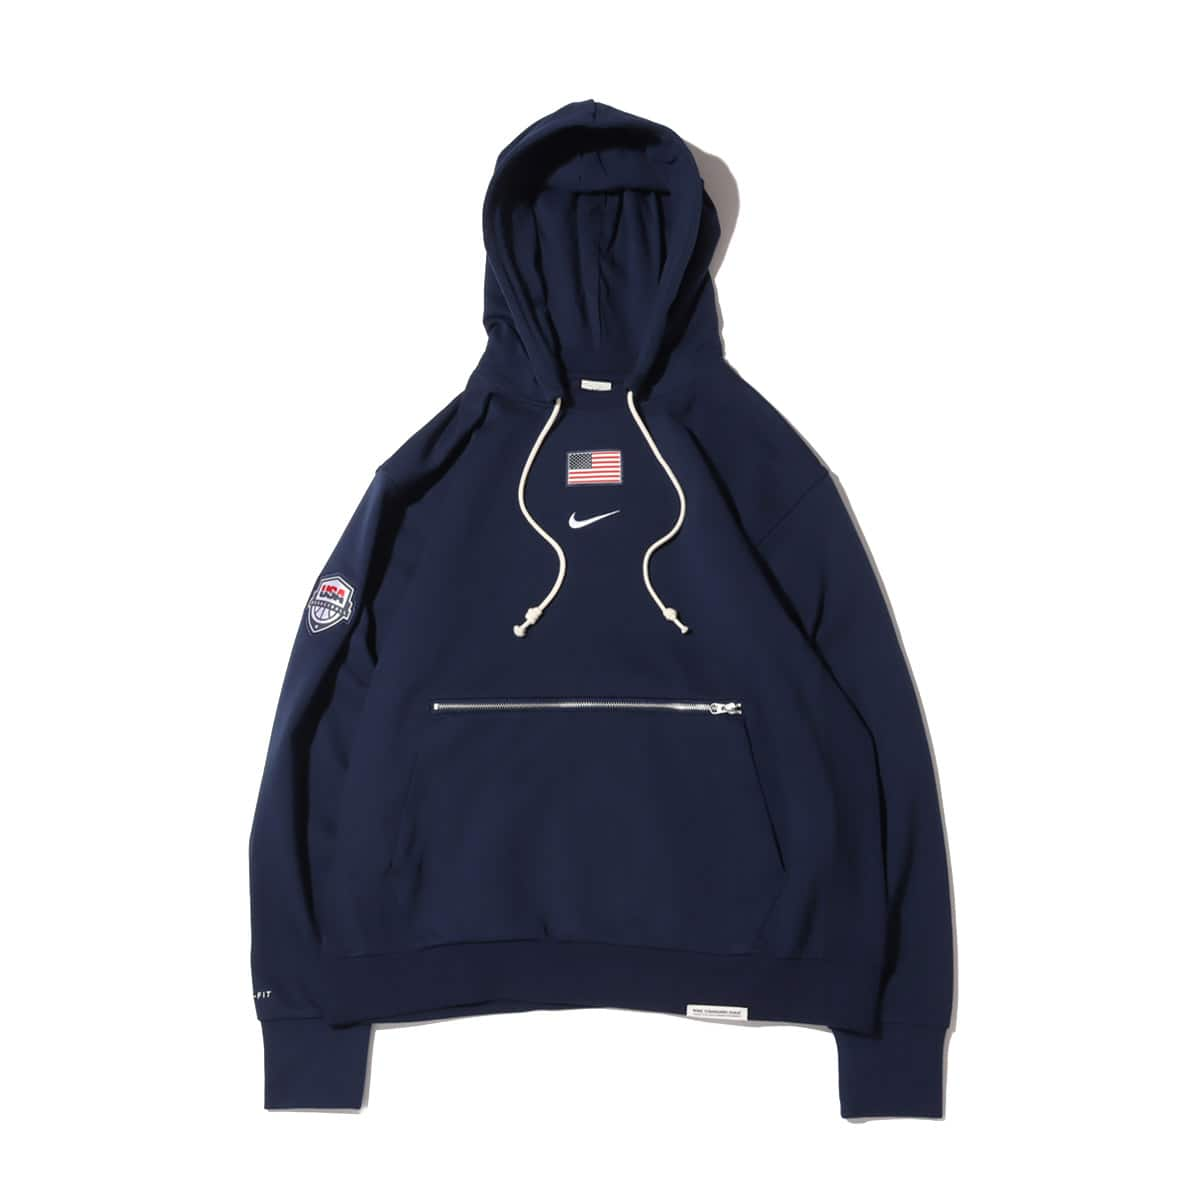 NIKE USA M NK STANDARD ISSUE PO HDY COLLEGE NAVY 21FA-I_photo_large